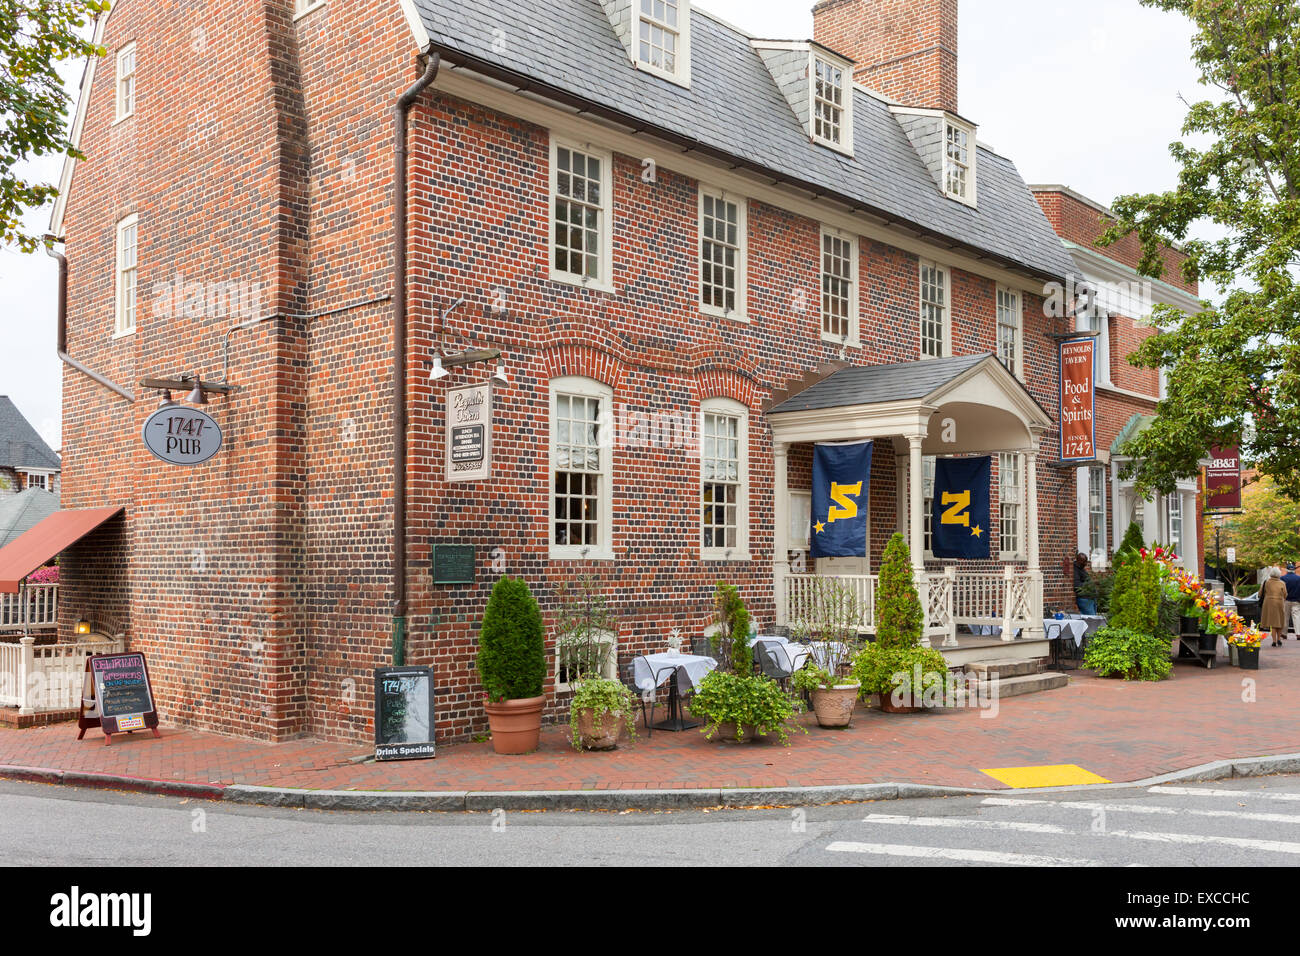 Reynolds Tavern in Annapolis, Maryland. - Stock Image